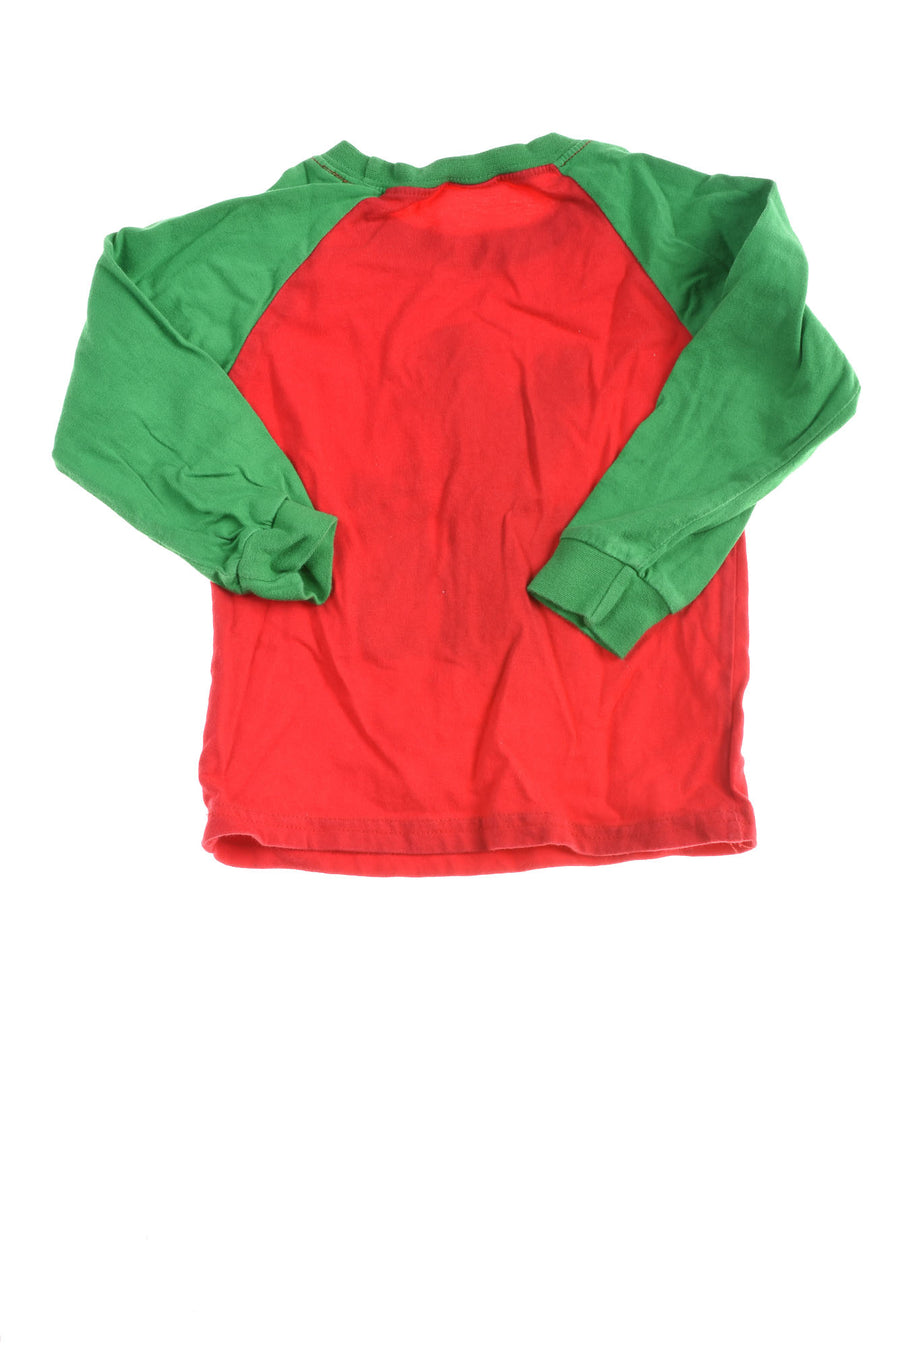 USED Baby Snow Toddler Christmas Shirt 4T Red & Green